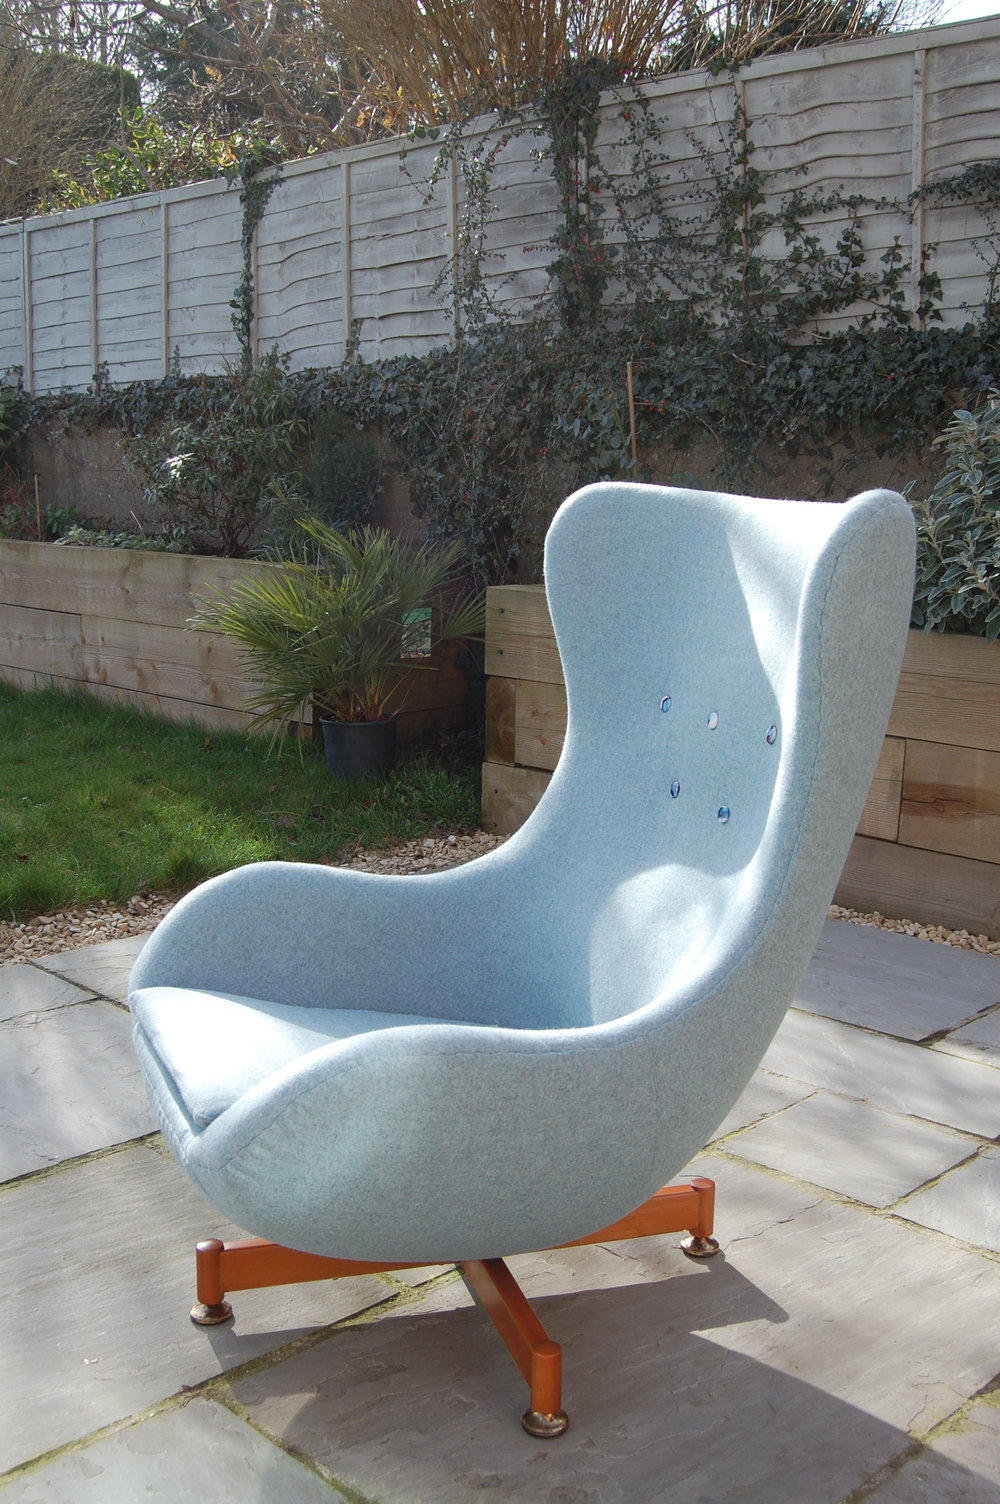 Grist & Twine Upholstery: Reupholstered Greaves & Thomas egg chair in pale blue wool with contrasting velvet buttons